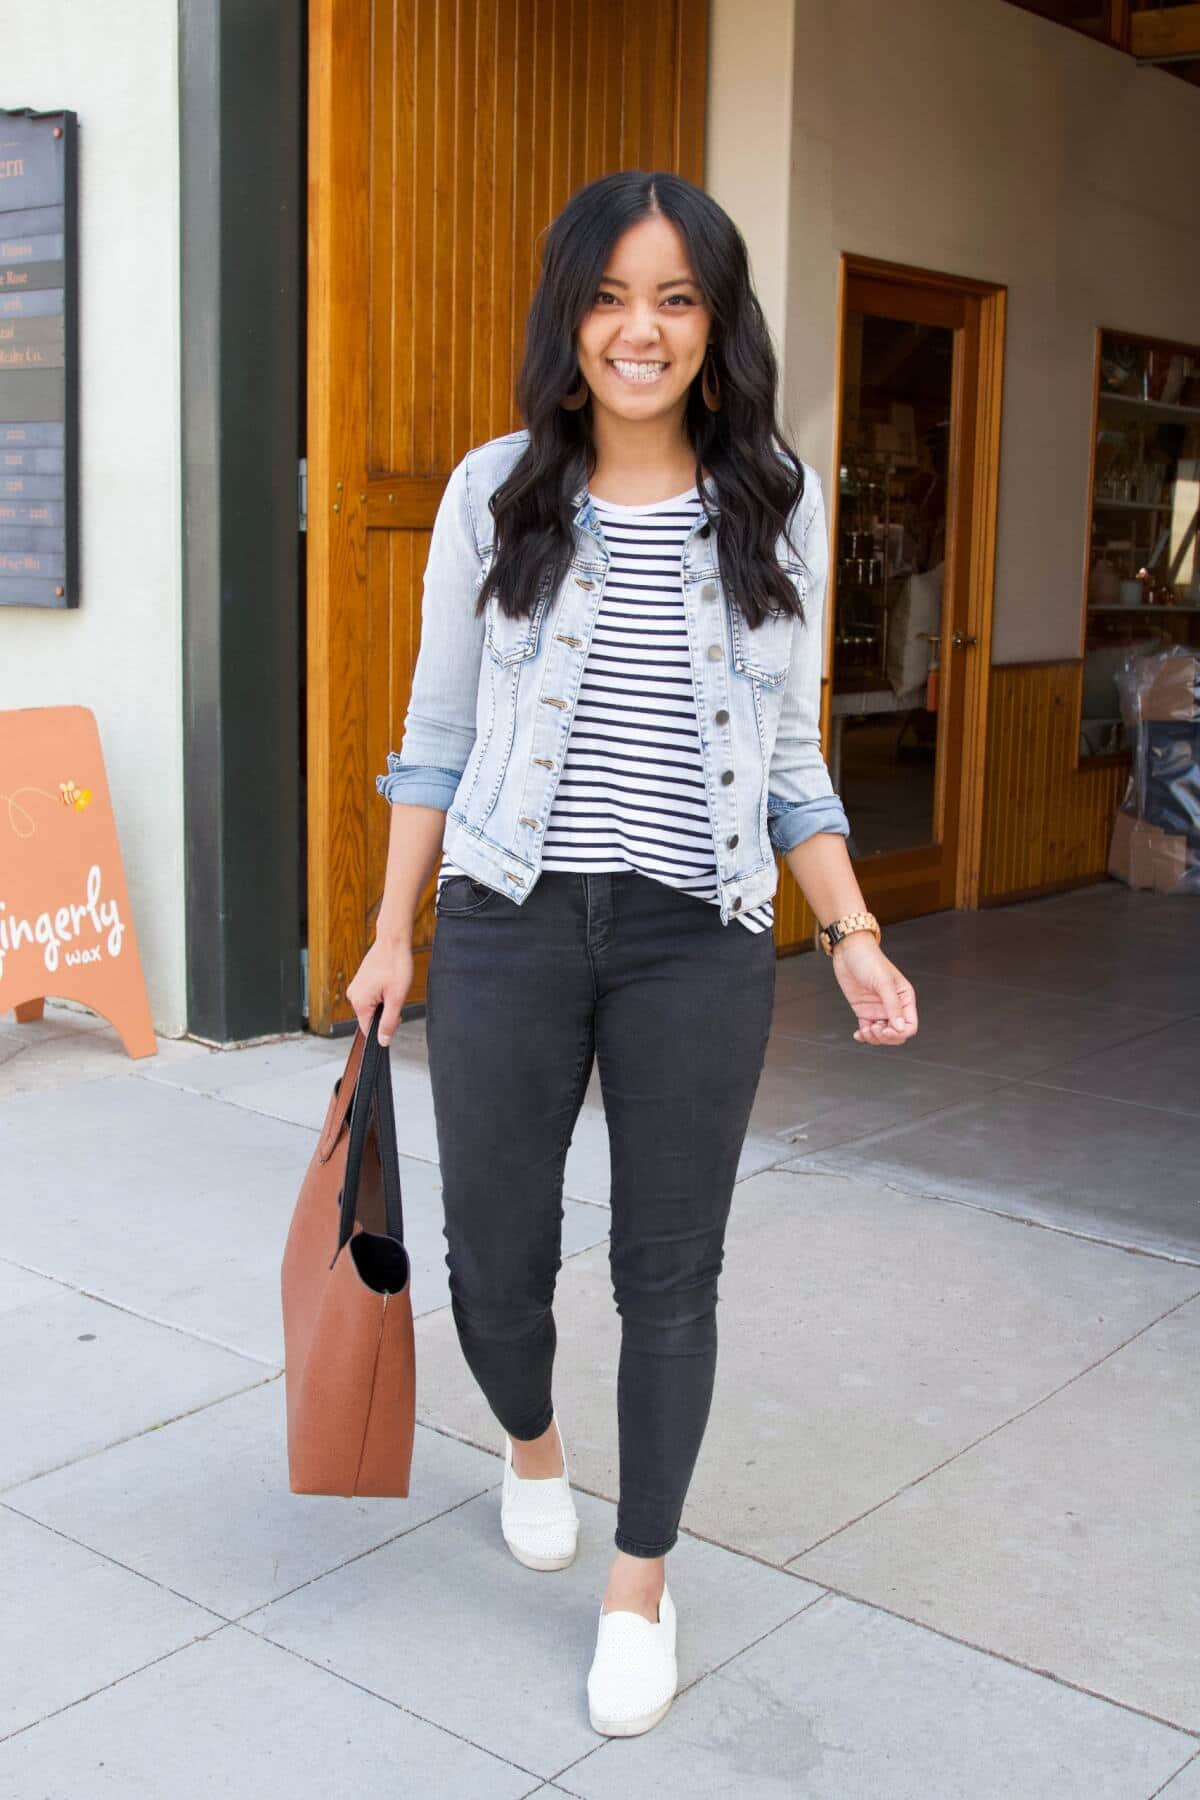 denim jacket outfit: denim jacket + striped tee + black jeans + white sneakers + brown tote